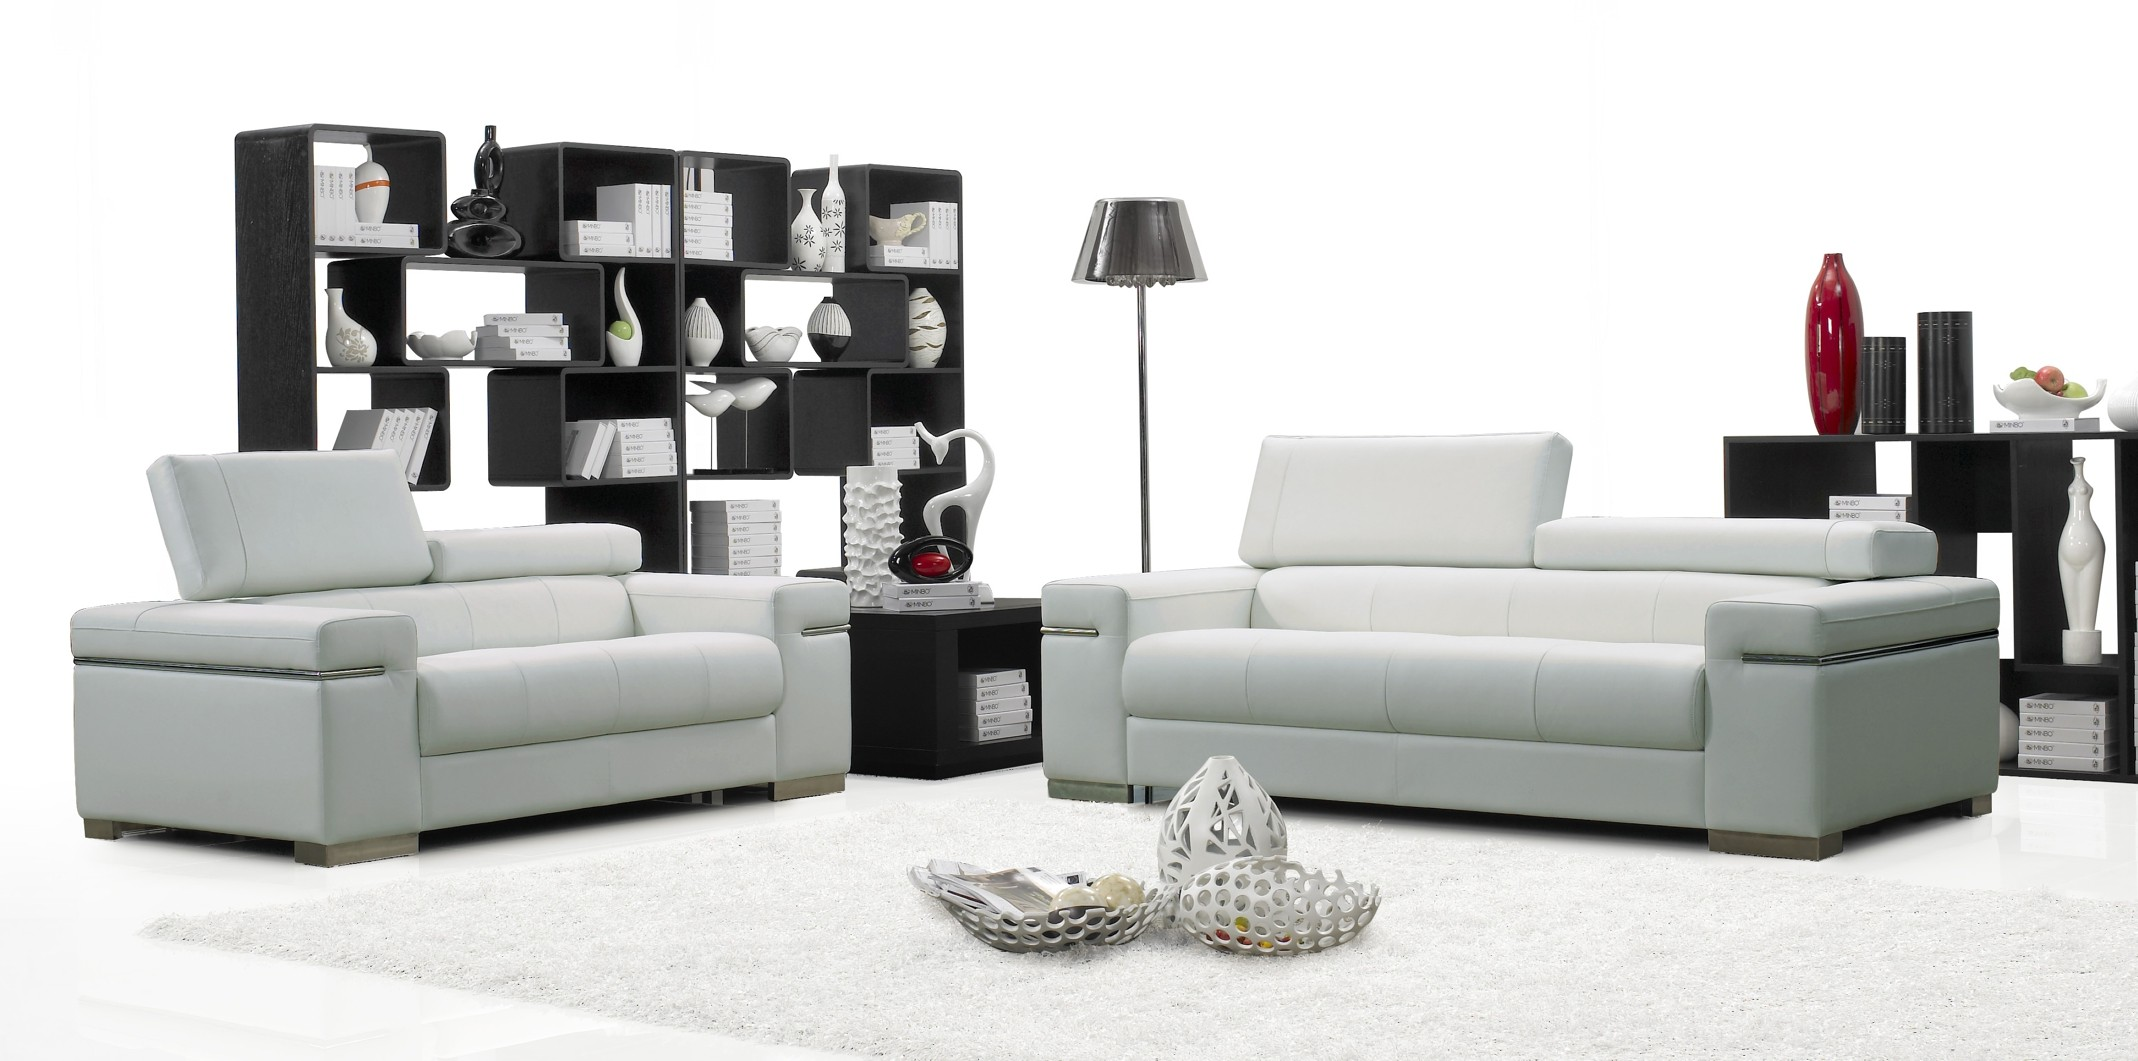 True modern furniture online homesfeed for Stylish modern furniture